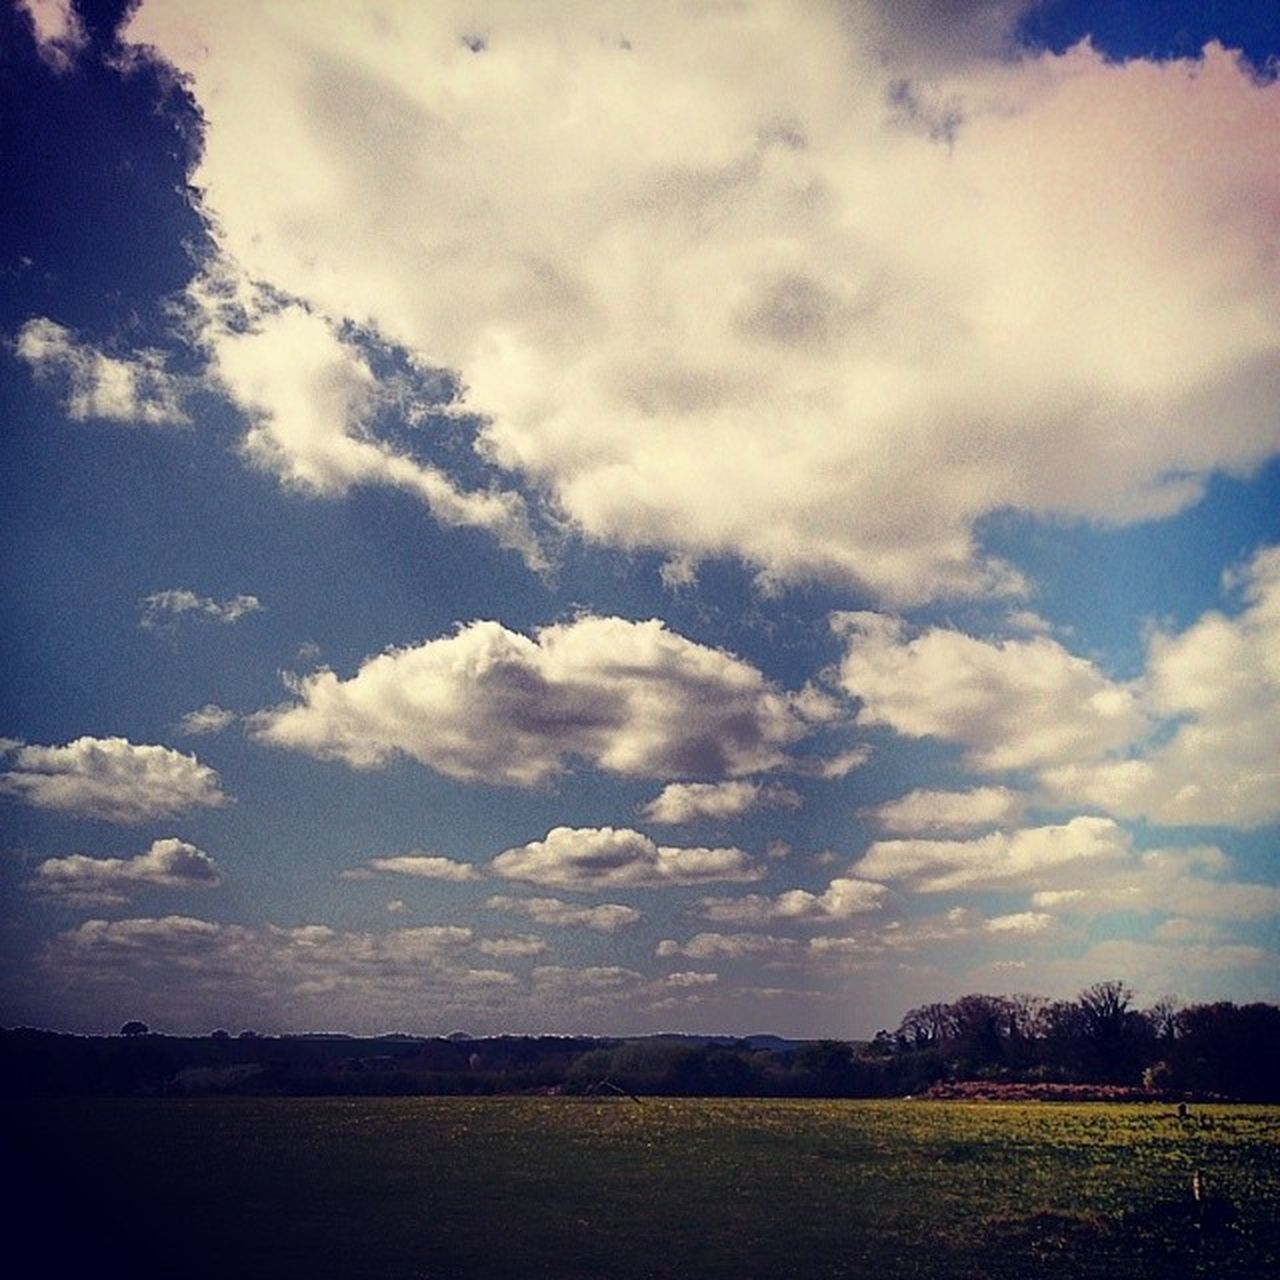 sky, nature, cloud - sky, field, tranquility, landscape, beauty in nature, scenics, tranquil scene, no people, outdoors, day, rural scene, tree